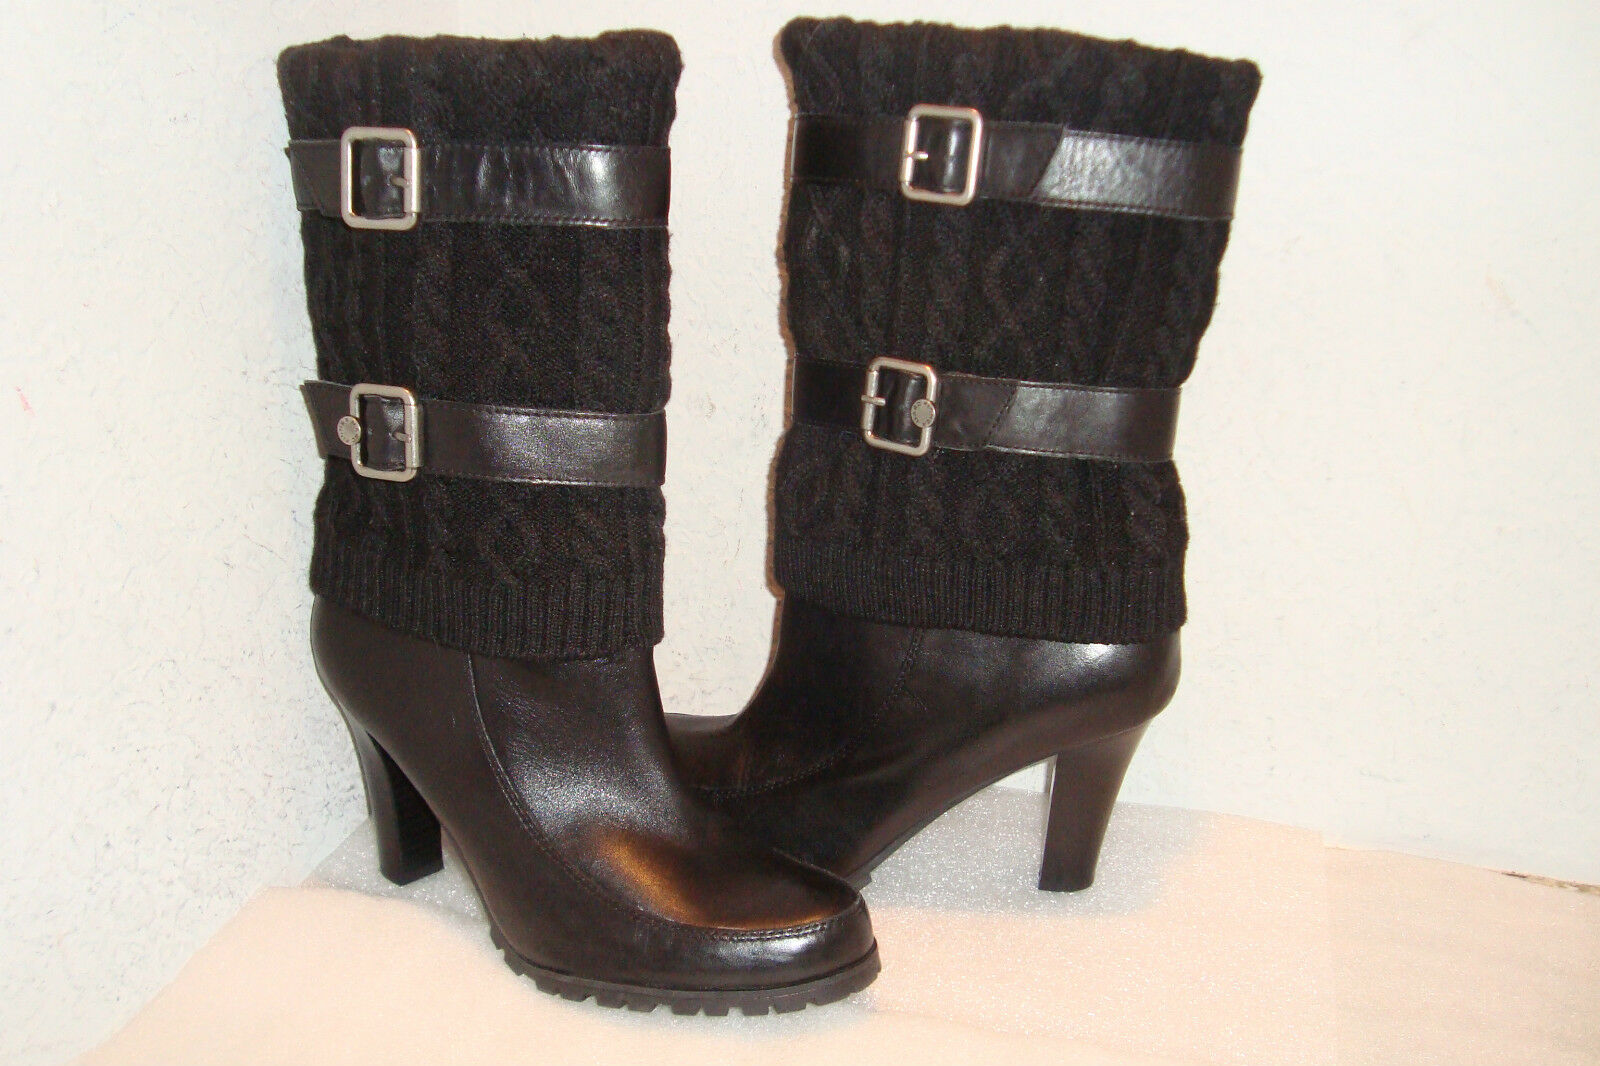 Marc Fisher Womens NWOB Fabric Black Mid Calf Boots Shoes 11 MED NEW